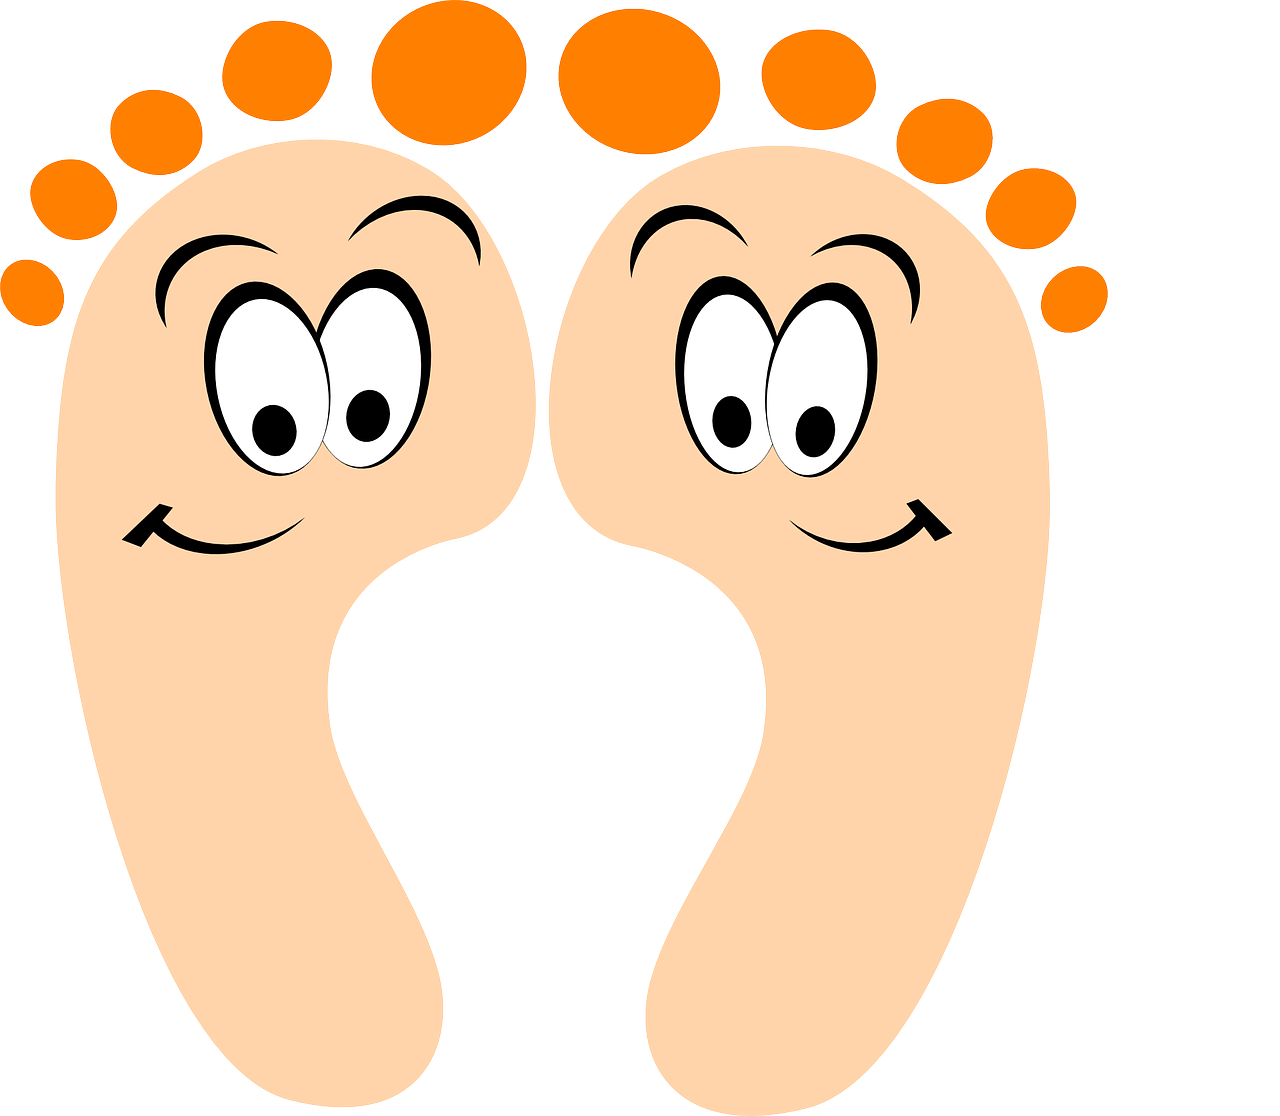 Foot clipart pair foot. Winter care essentials for